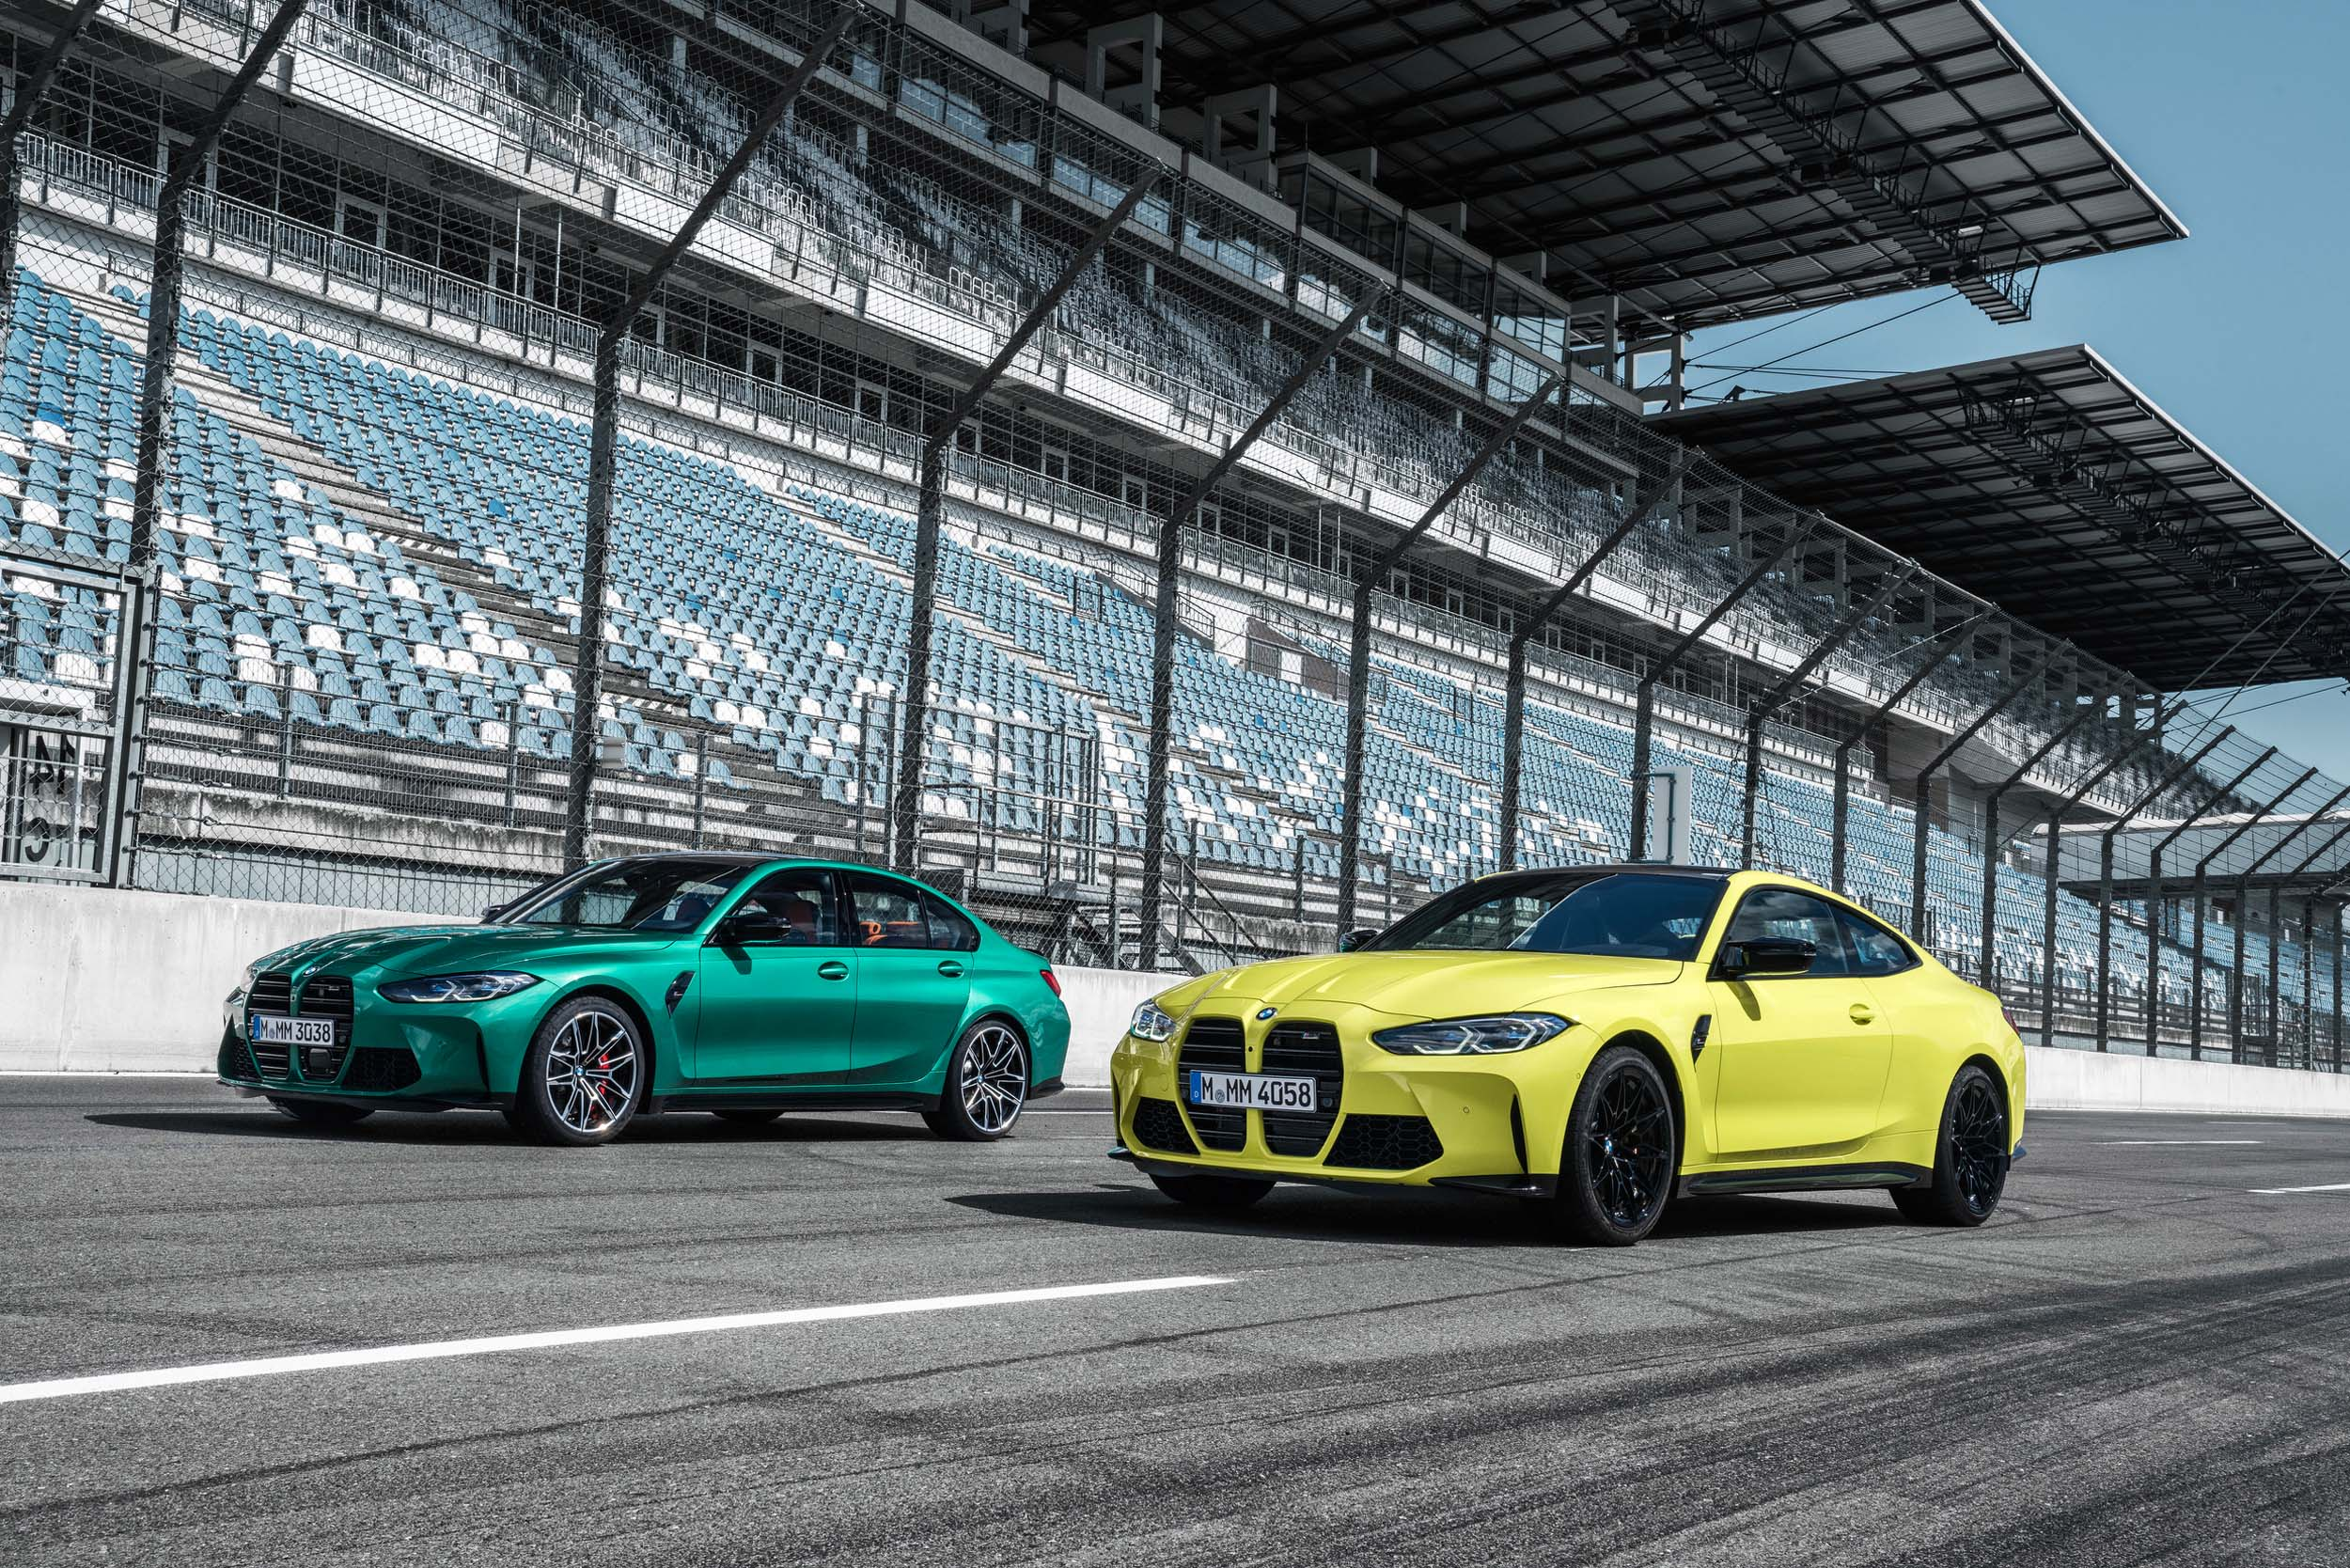 THE NEW 2021 BMW M3 SEDAN AND M4 COUPE